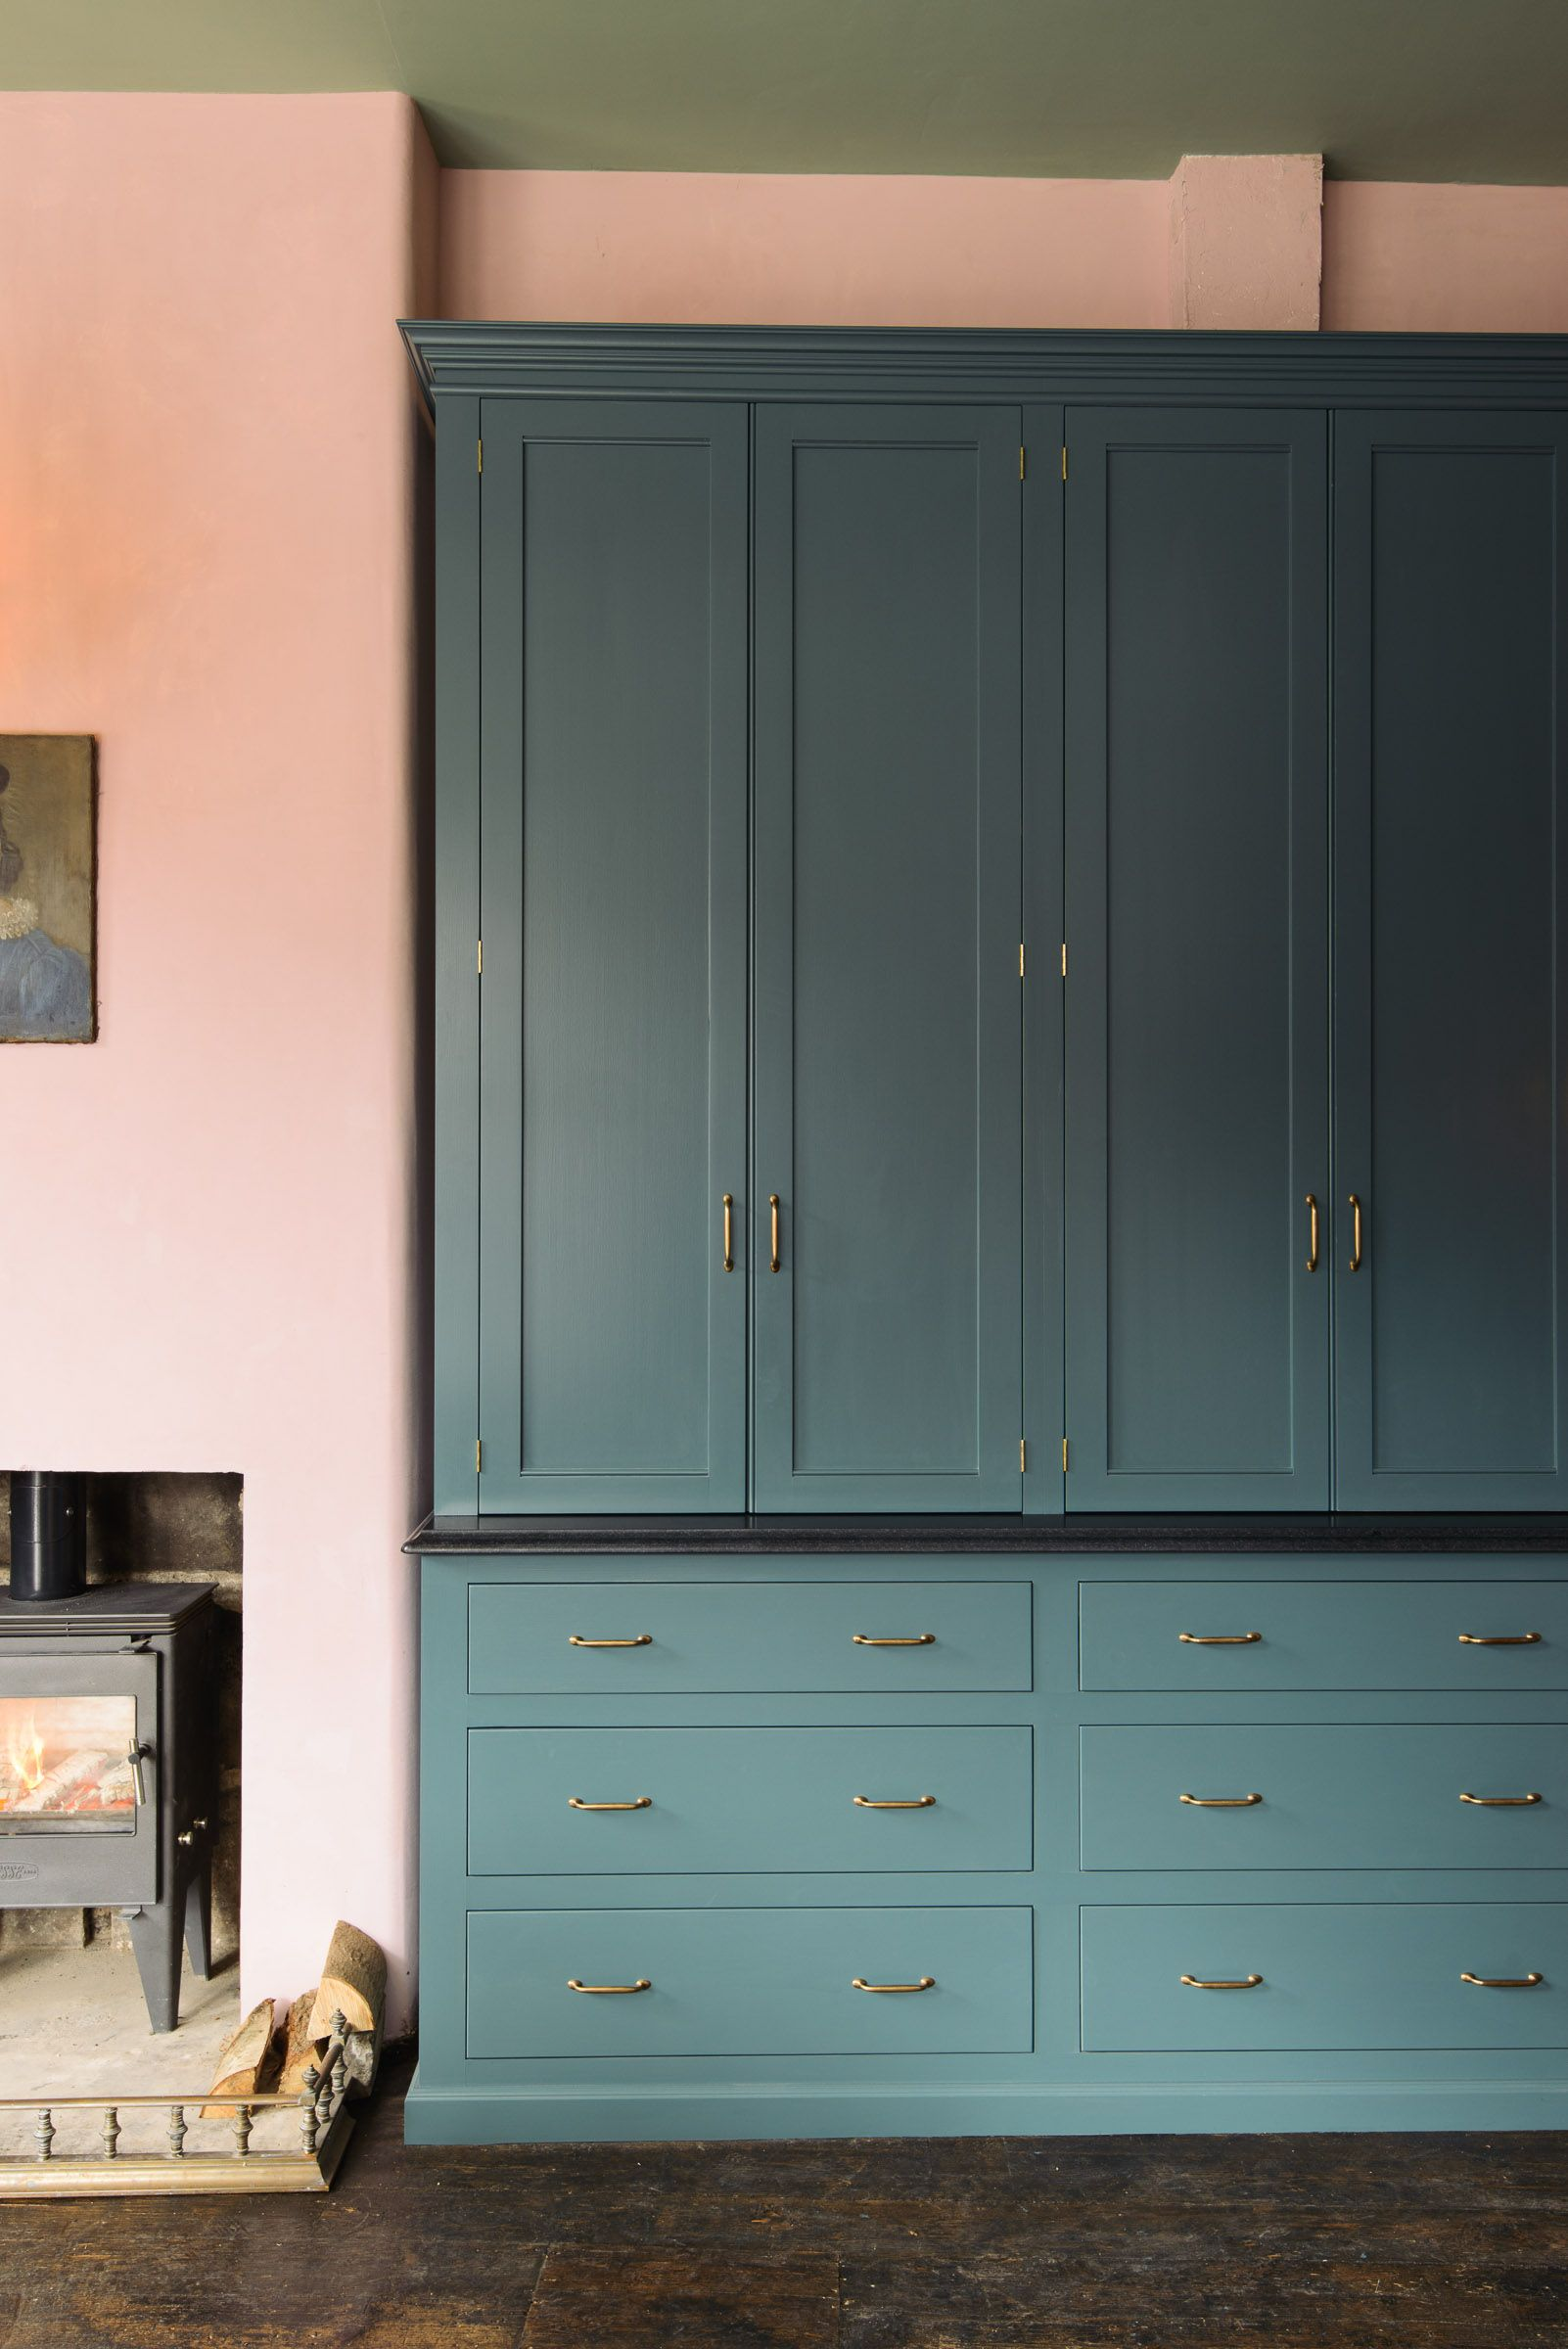 Our classic english kitchen furniture is completely bespoke and can